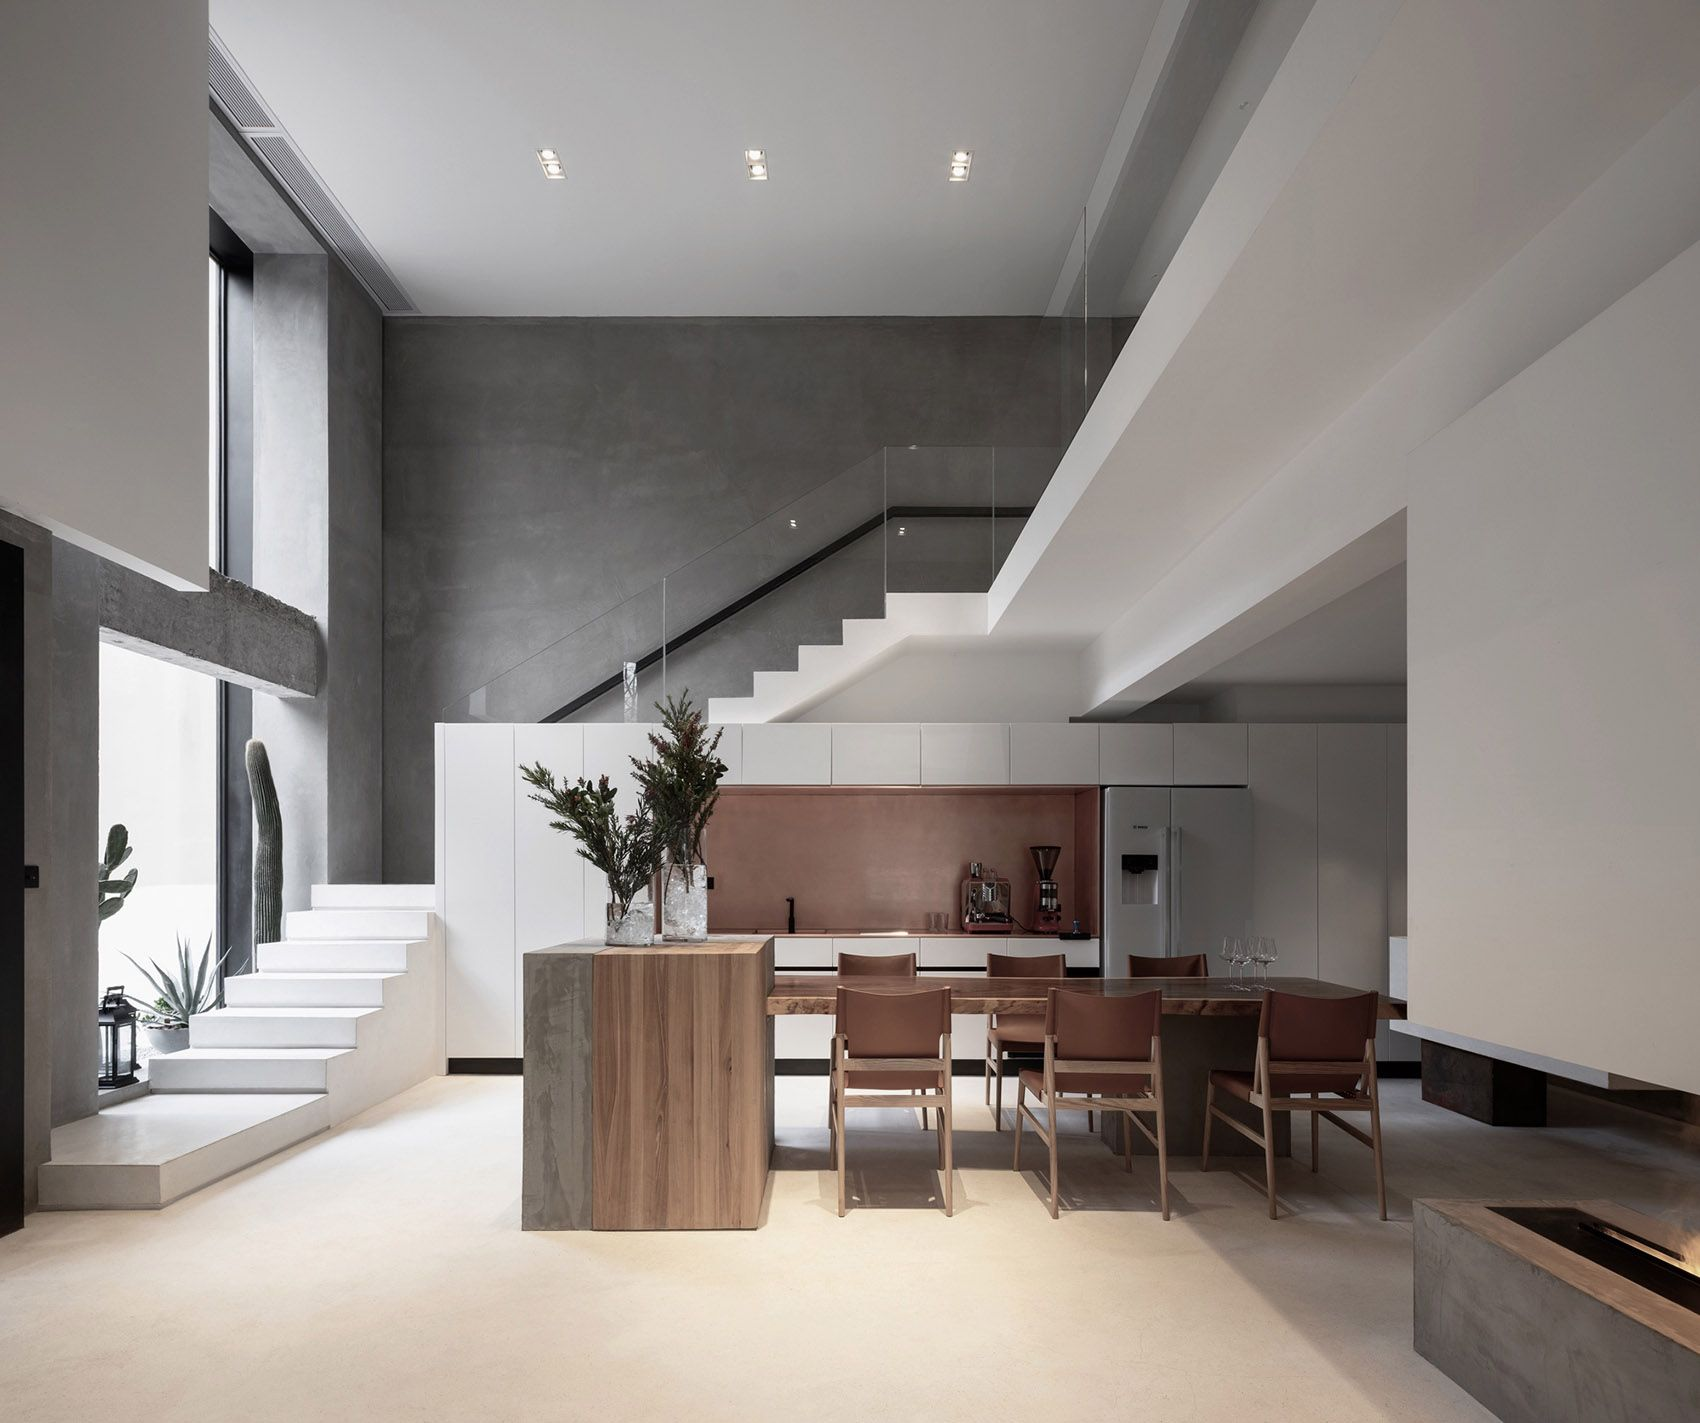 Habitat By H2design A Simple And Pure Guest House Maintaining A Distance From The Urban Architecture Interior Stairs Home House